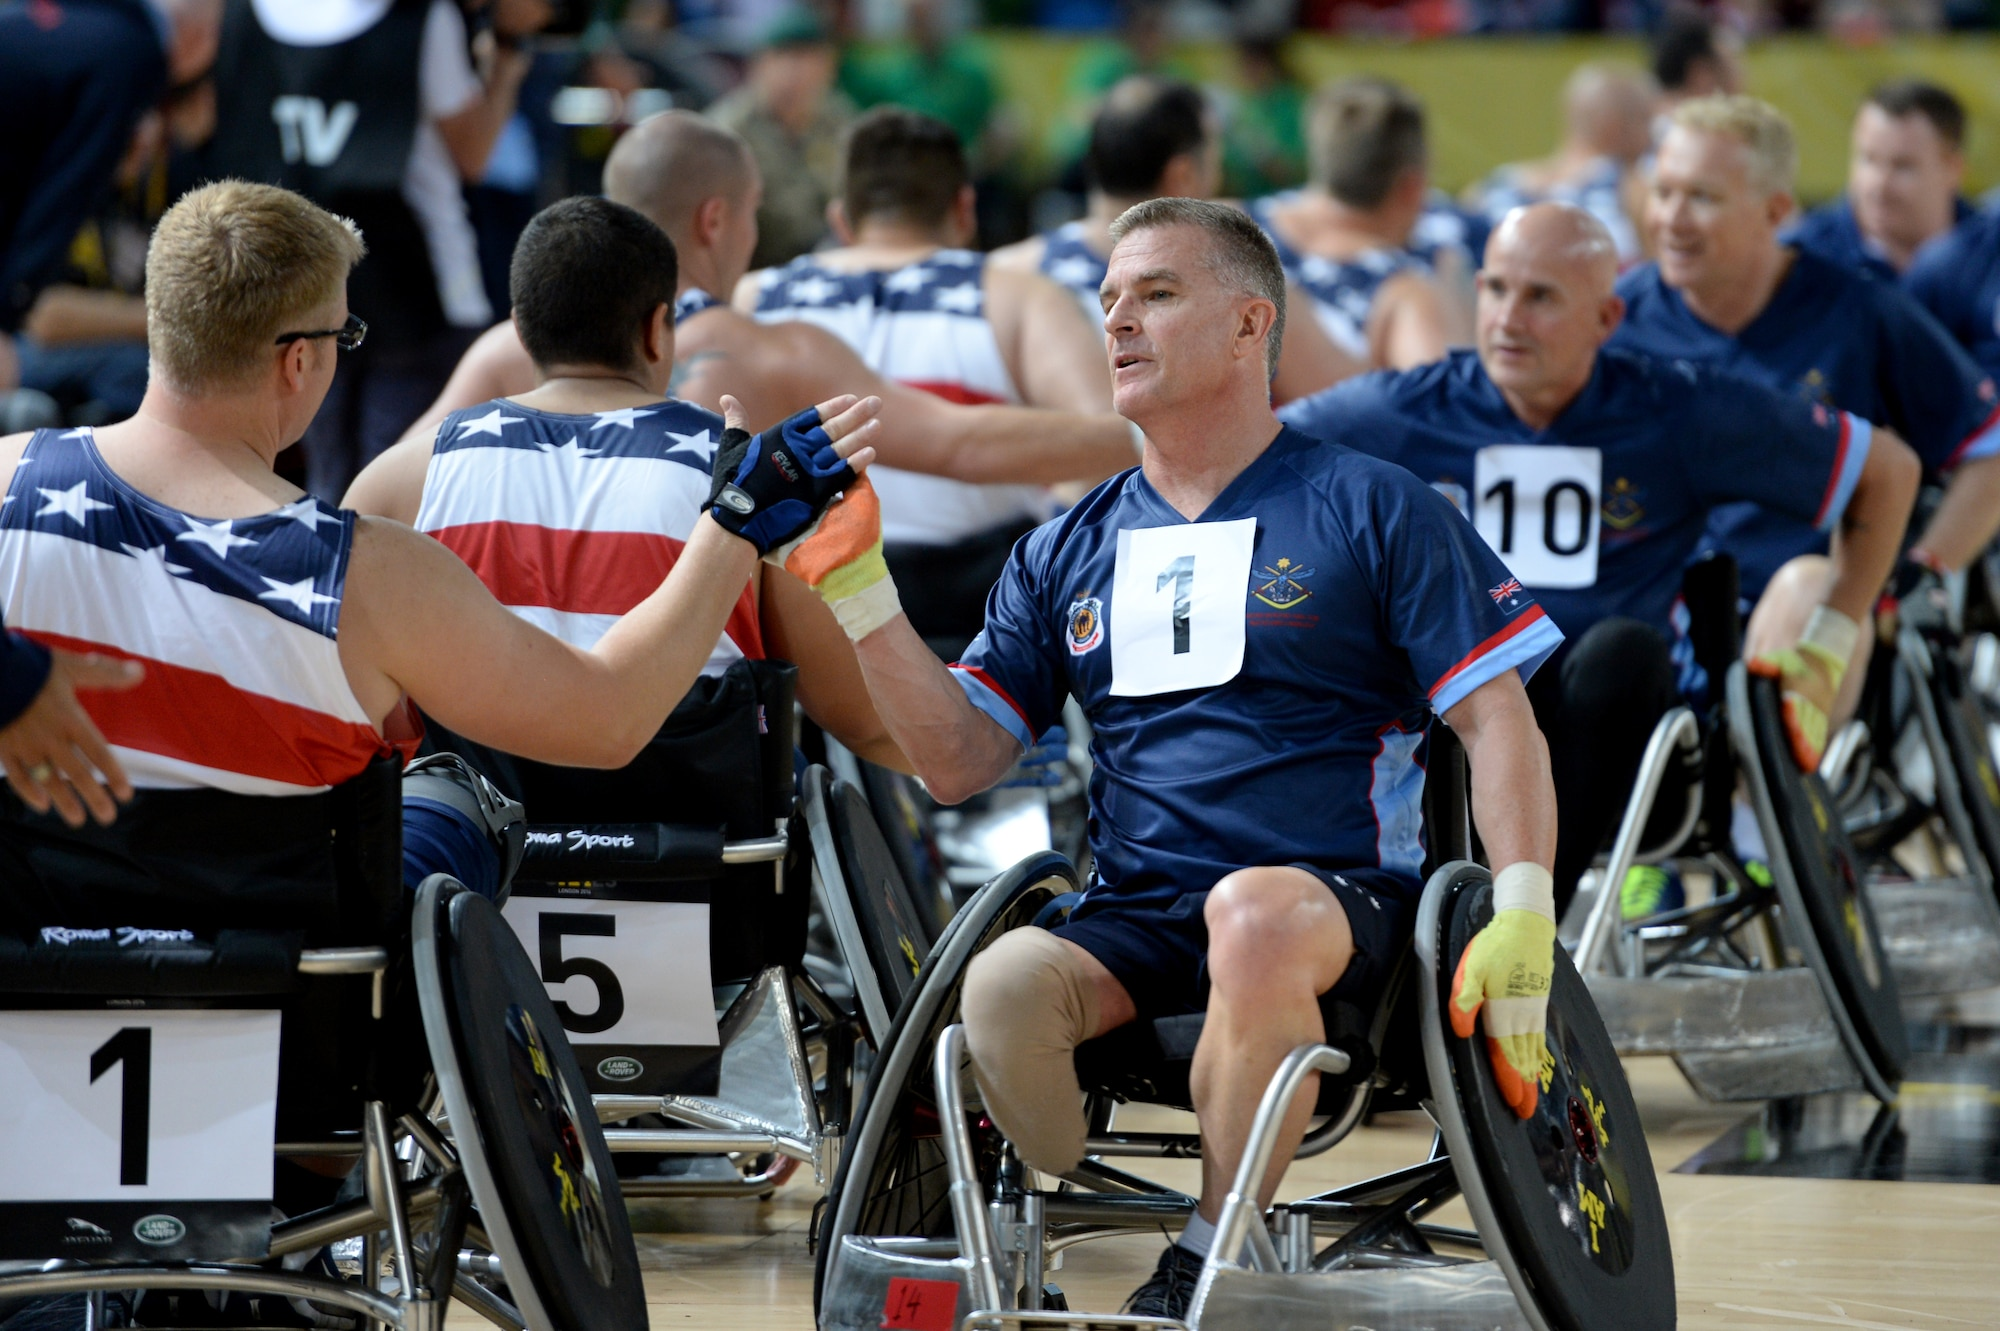 Members of the American and Australian wheelchair rugby teams congratulate each other after the U.S's 14-4 victory over Australia Sept. 12, 2014, at the 2014 Invictus Games in London. Invictus Games is an international competition that brings together wounded, injured and ill service members in the spirit of friendly athletic competition. American Soldiers, Sailors, Airmen and Marines are representing the U.S. in the competition which is taking place Sept. 10-14. (U.S. Navy photo/Mass Communication Specialist 2nd Class Joshua D. Sheppard)